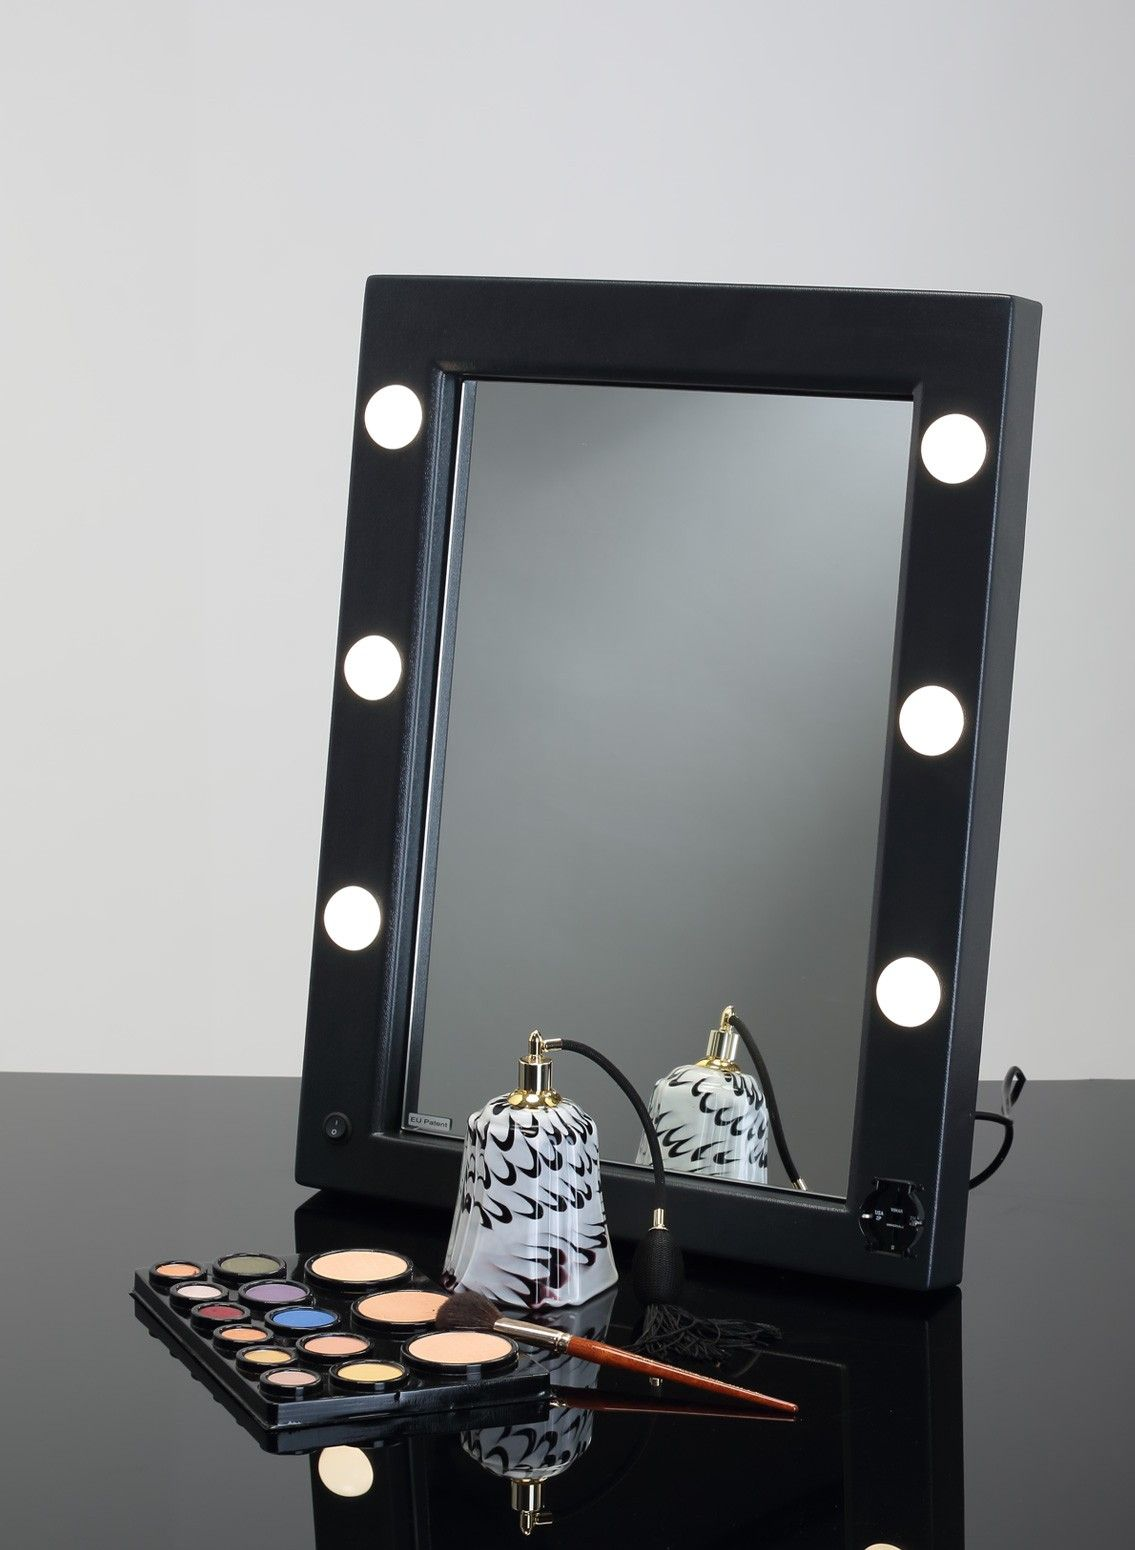 Portable Vanity Mirror With Lights New Mw01Tsk Makeup Portable Mirror With Lights  Pinterest  Makeup Design Decoration